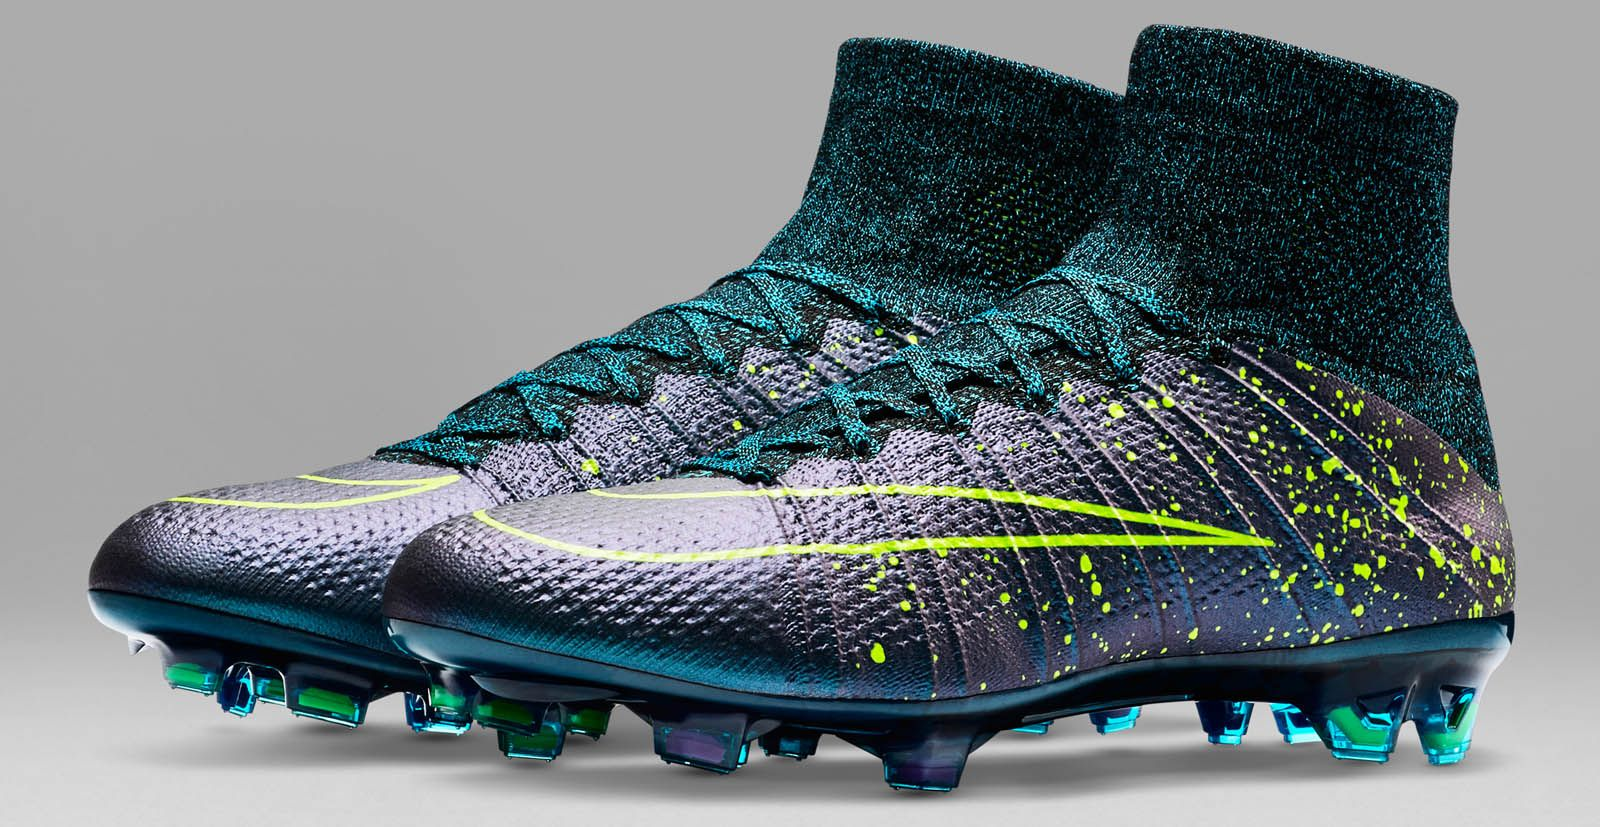 Blue Nike Mercurial Superfly 2015 2016 Boots Released